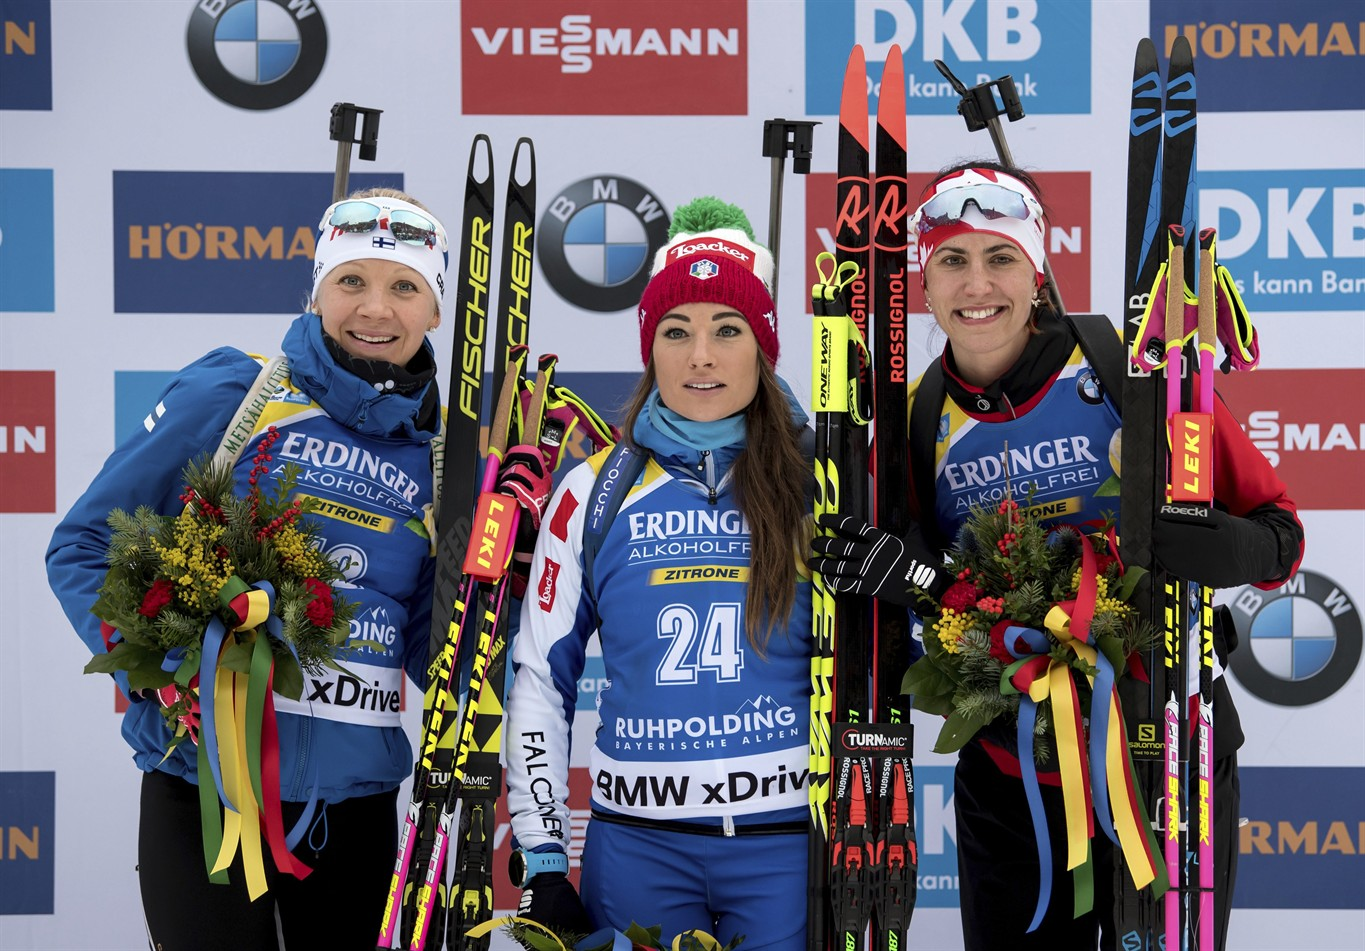 biathlon_podium.jpg (379.83 Kb)